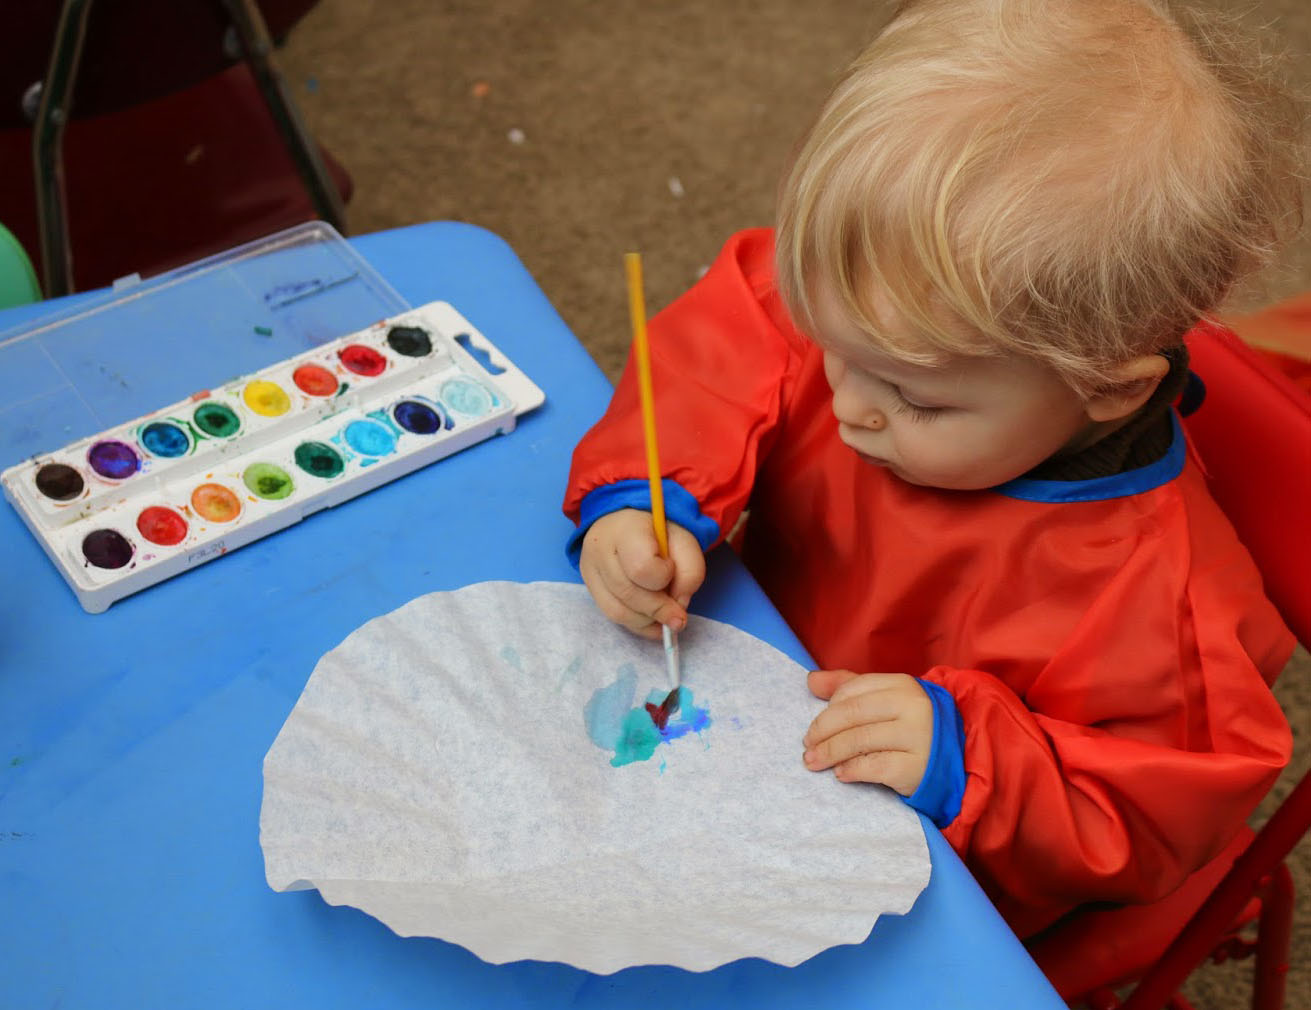 Celebrate Your Children For Naeyc S Week Of The Young Child Funshine Blog